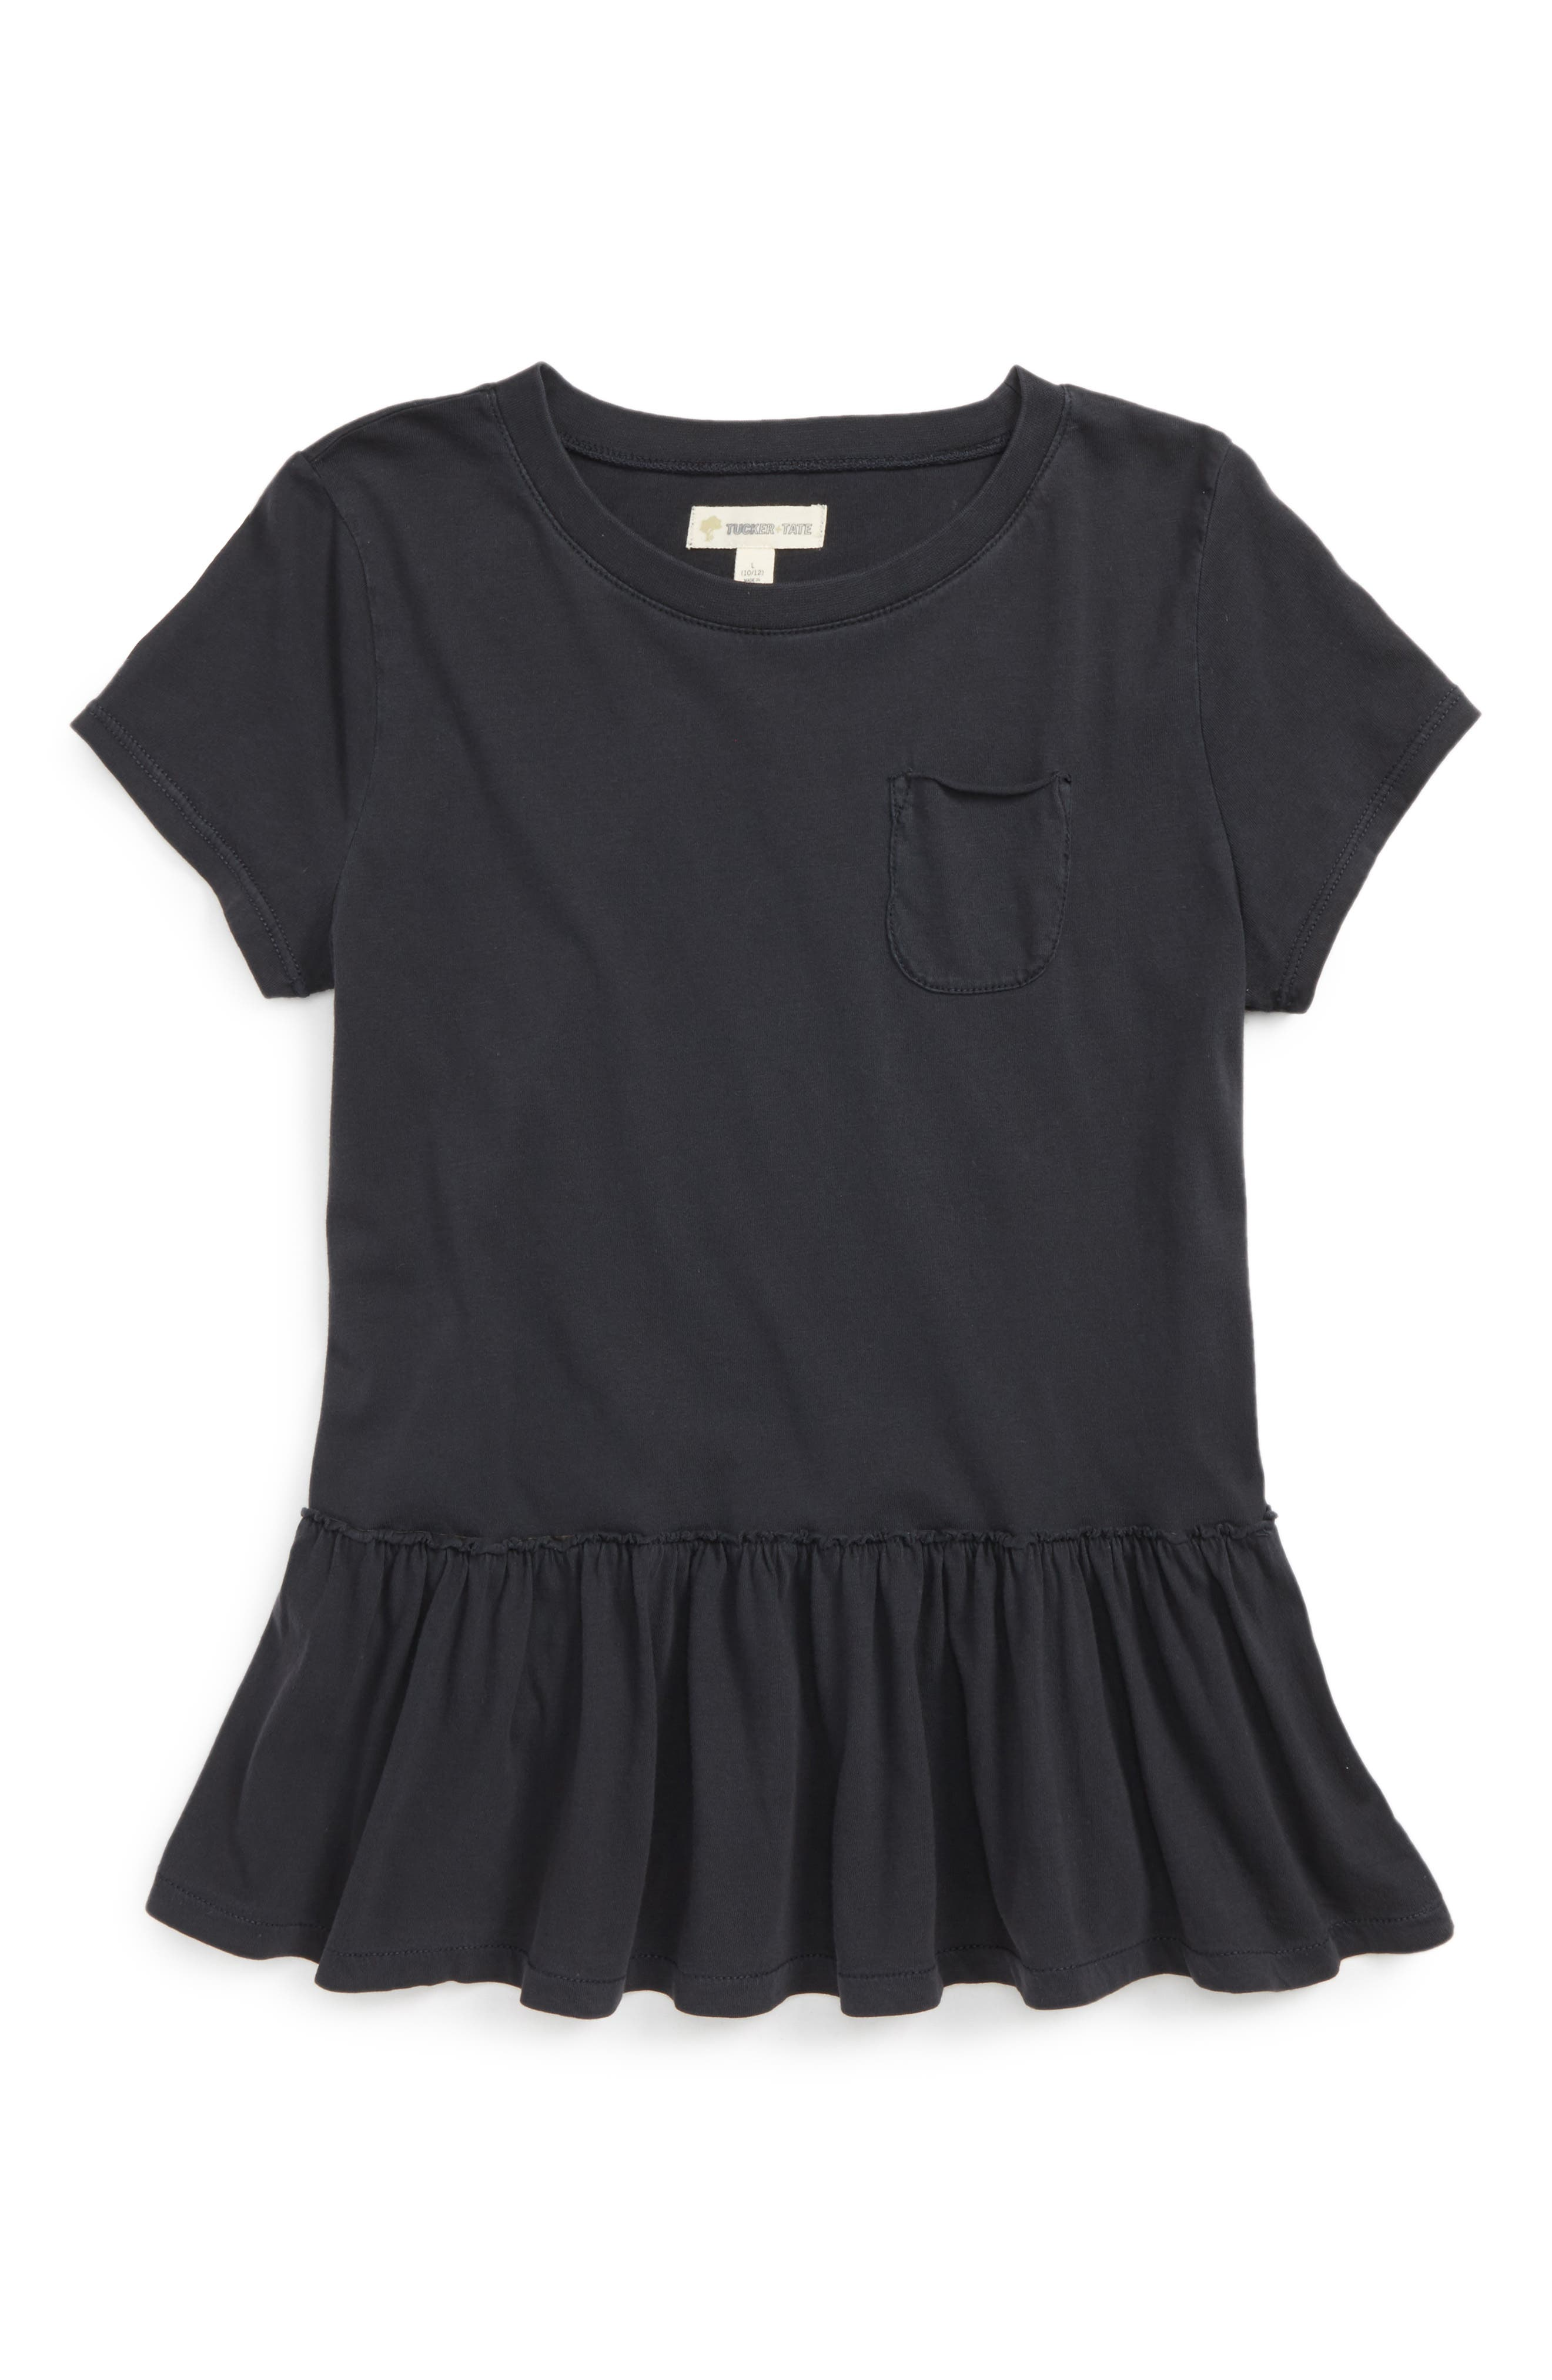 Tucker + Tate Raw Edge Peplum Tee (Big Girls)